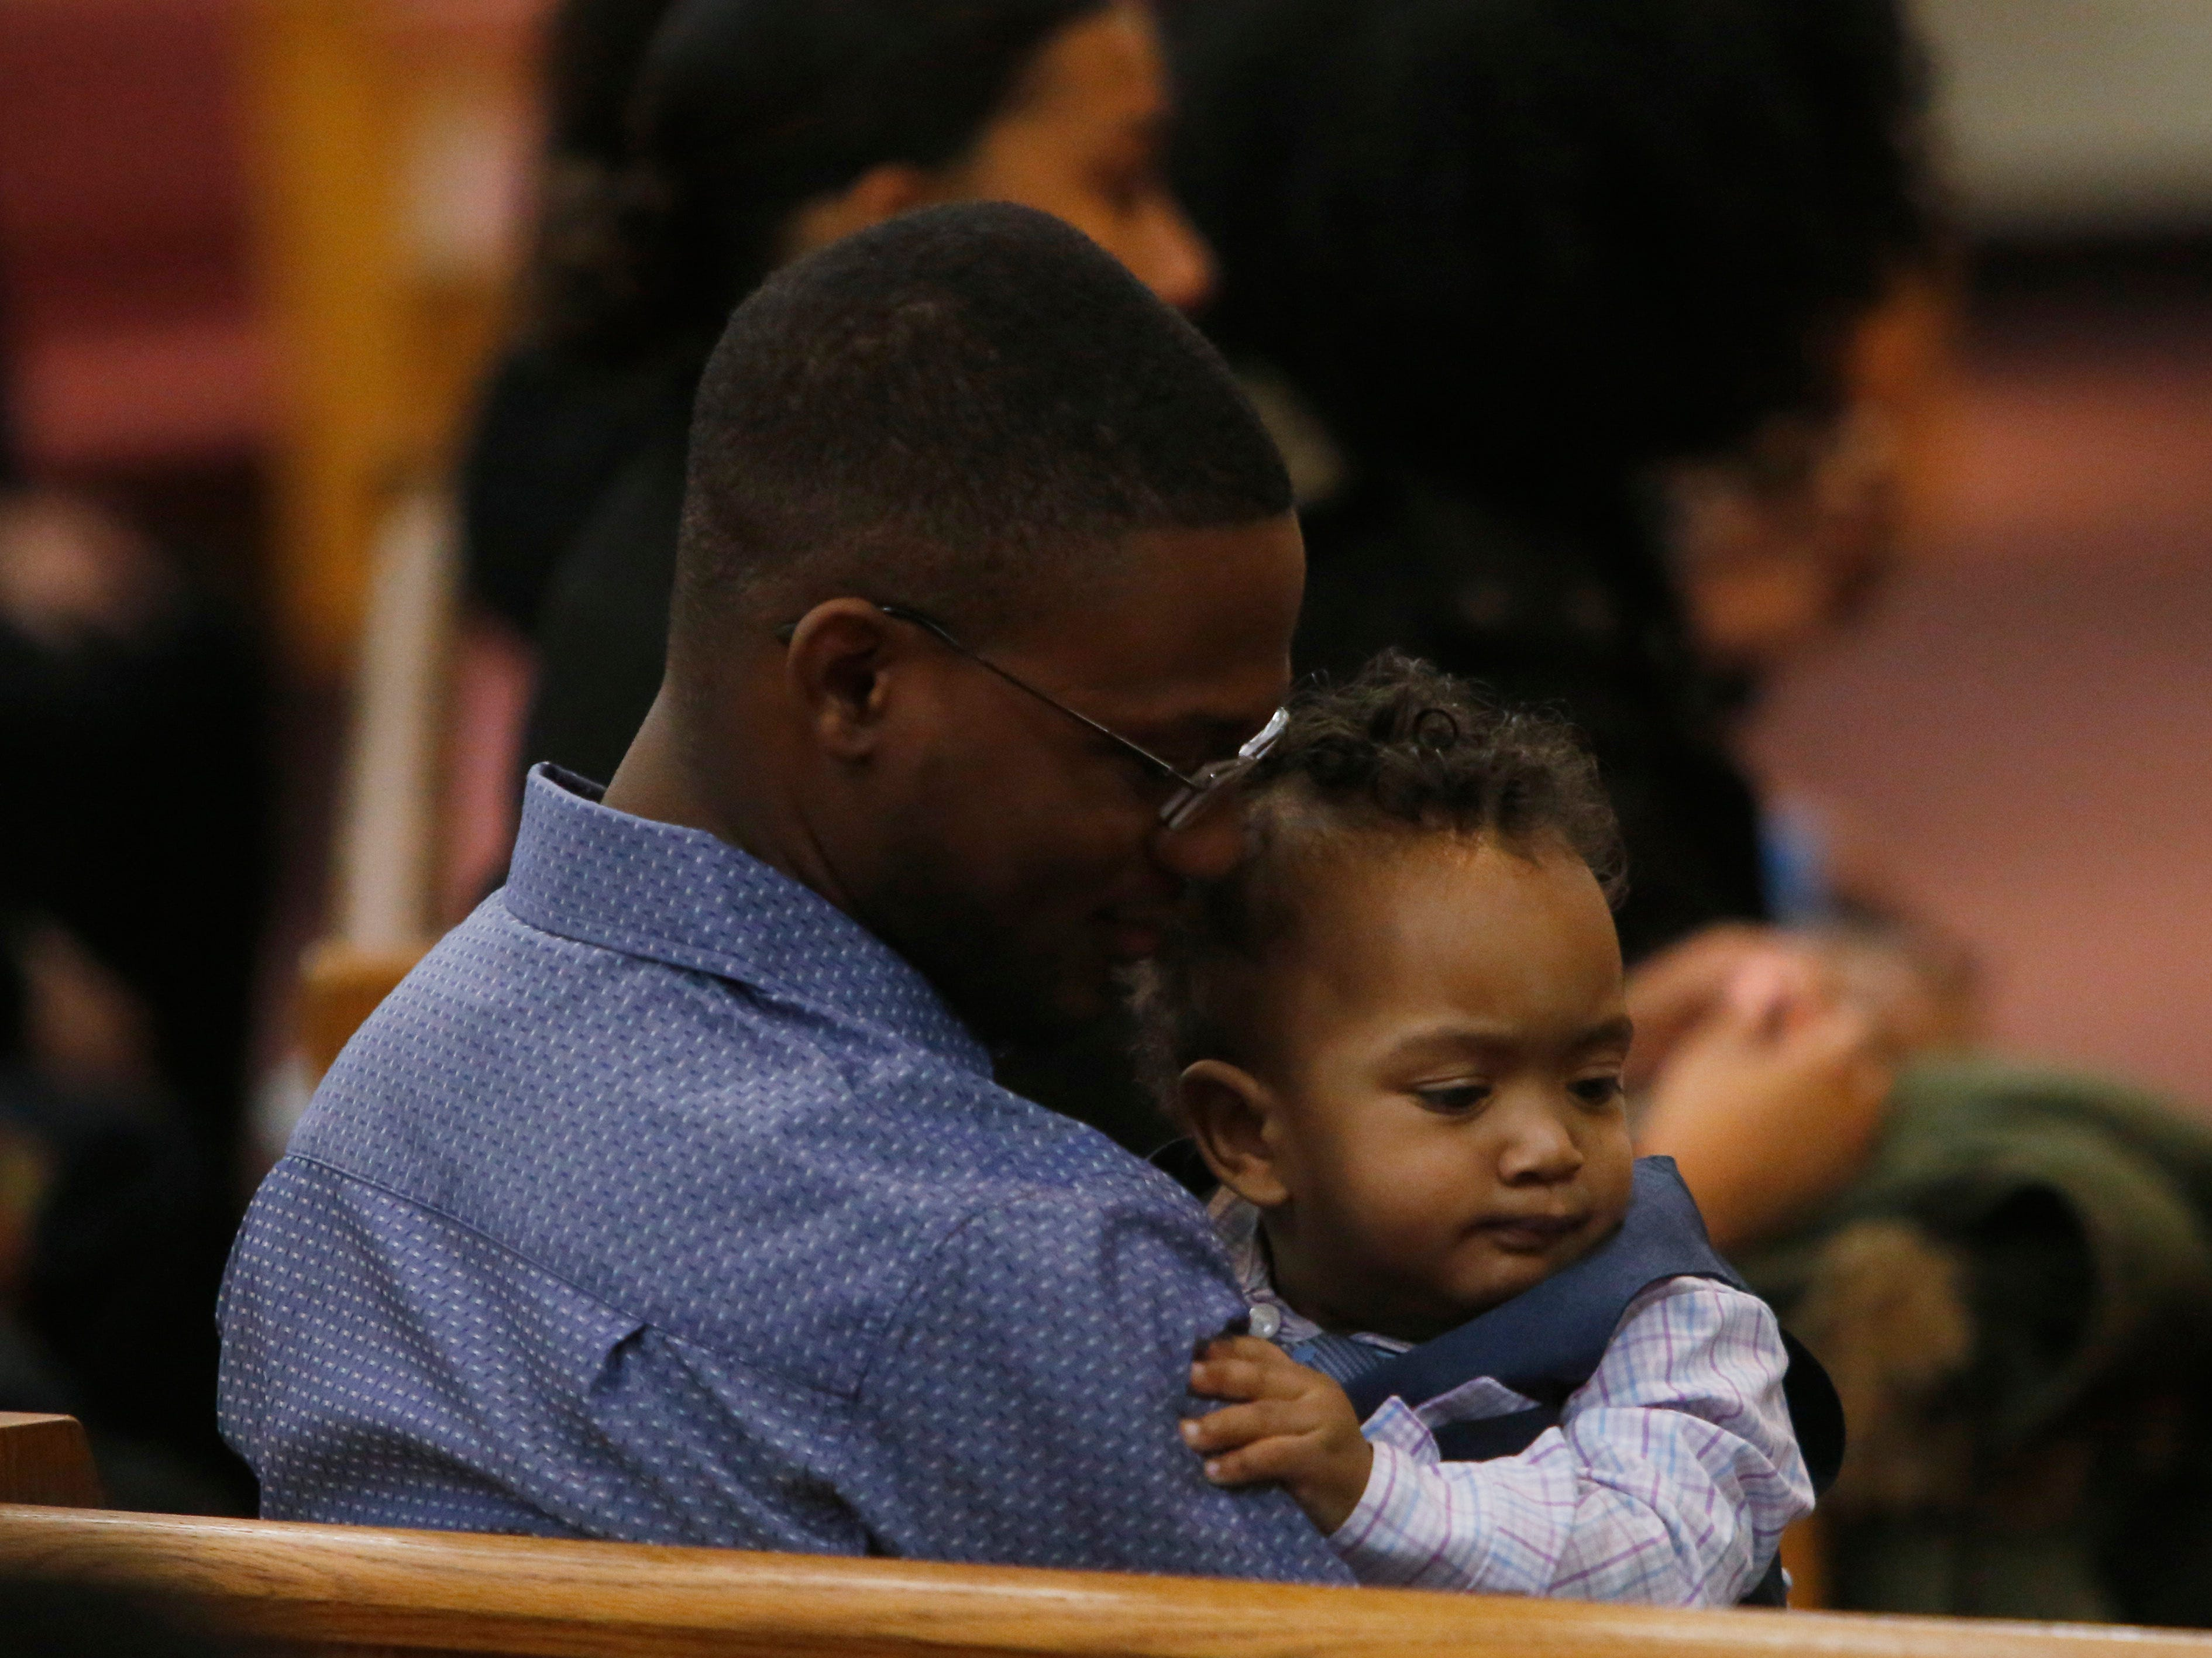 Jaquan Cesar's brother, Jordan Cesar holds Jaquan's son, Yasir, during Jaquan's funeral service at Beulah Baptist Church in the City of Poughkeepsie on February 22, 2019. Jaquan died on Feb 11th while attempting to help a stranded motorist on the Cross Bronx Expressway.